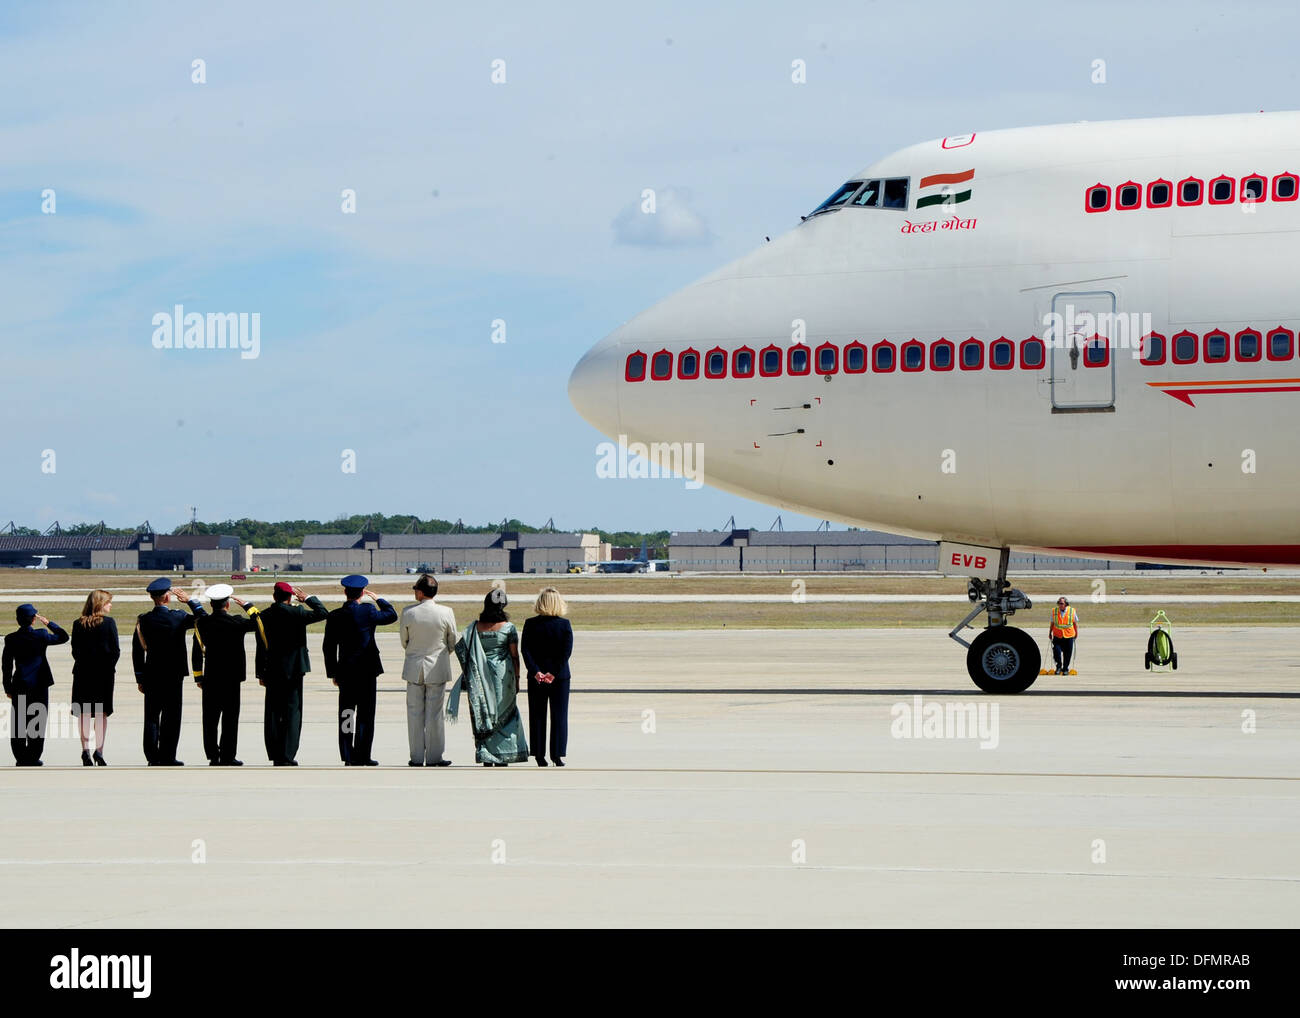 Military member's renders a salute as an aircraft carrying Prime Minister of India Dr. Manmohan Singh arrives at Joint Base Andrews, Md., Sept. 26, 2013. The Prime Minister arrived for a two-day visit to meet with President Barack Obama and First Lady Mic - Stock Image